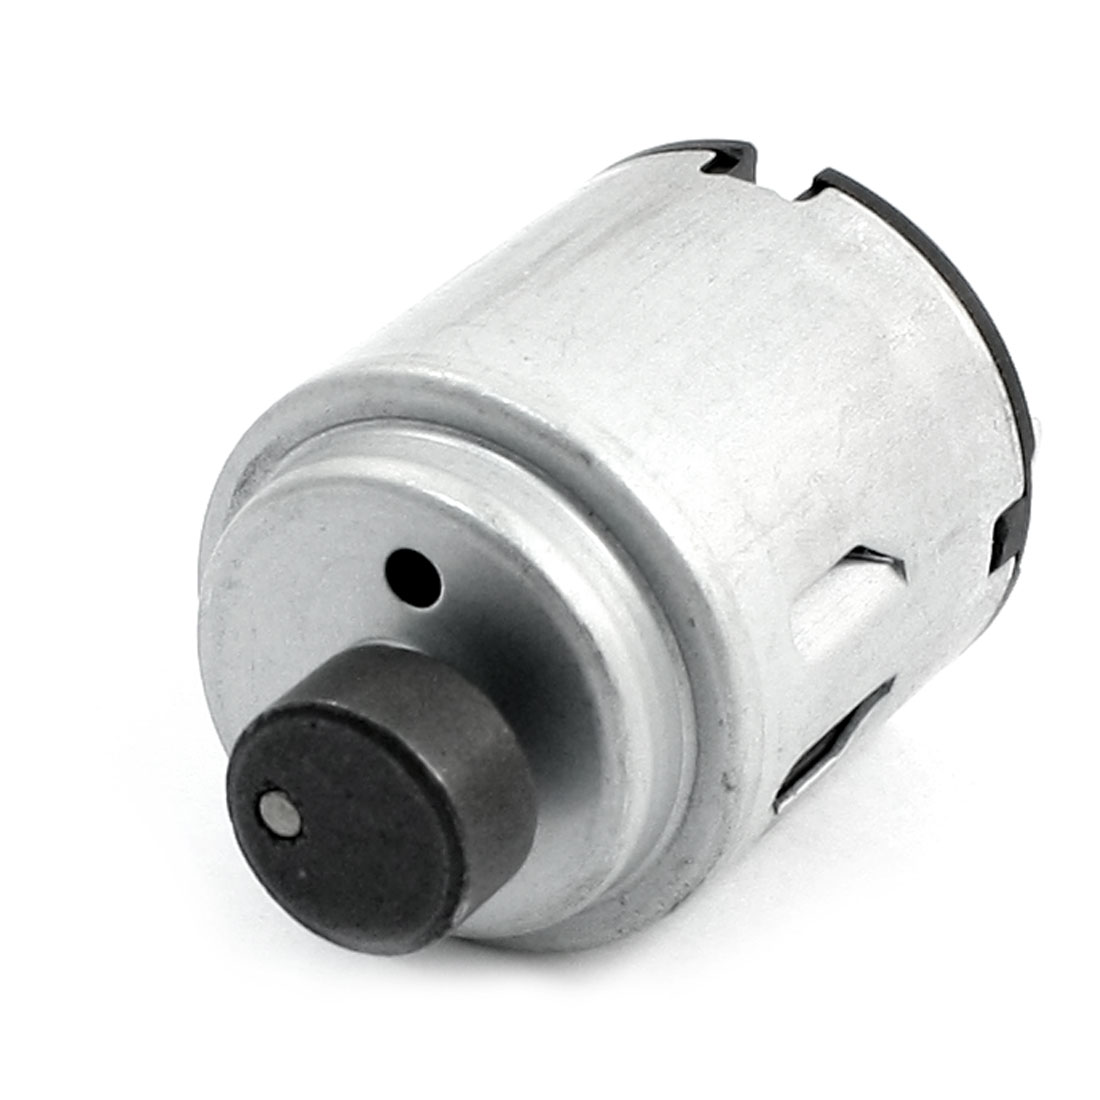 6900RPM-1-5-6V-DC-Round-Shaft-High-Torque-Mini-Micro-Vibration-Motor